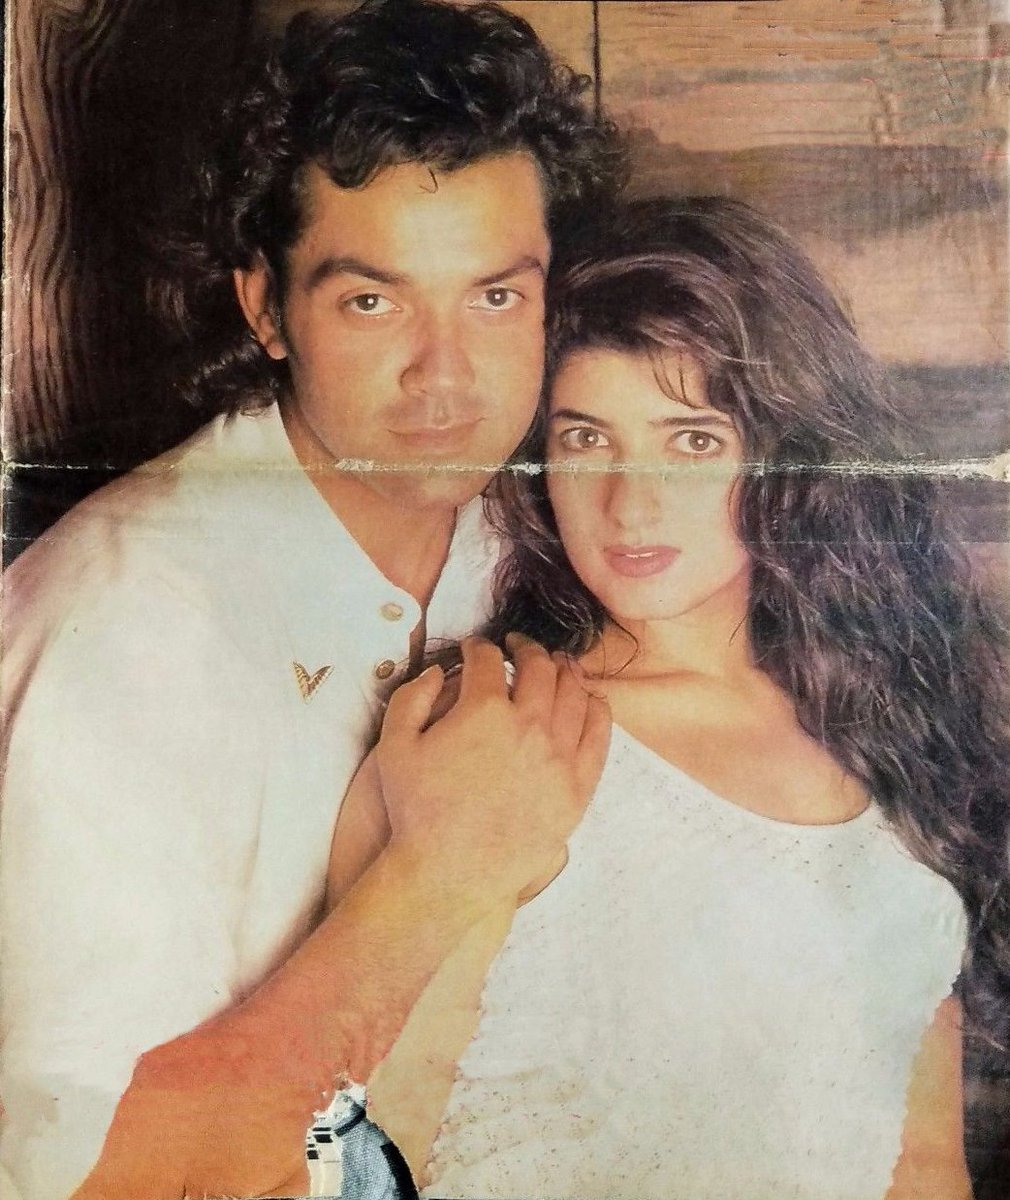 Movies N Memories On Twitter Bobby Deol And Twinkle Khanna During